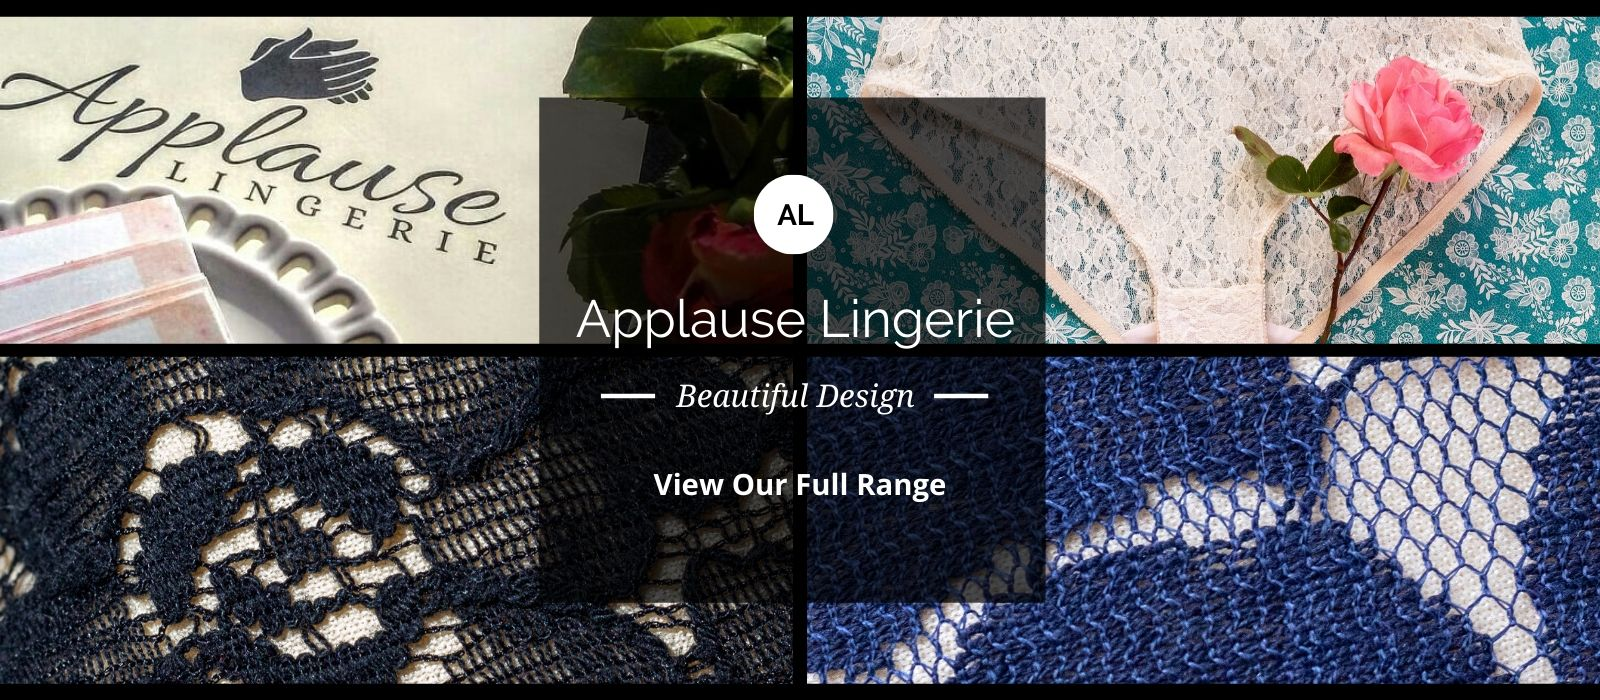 Applause Lingerie